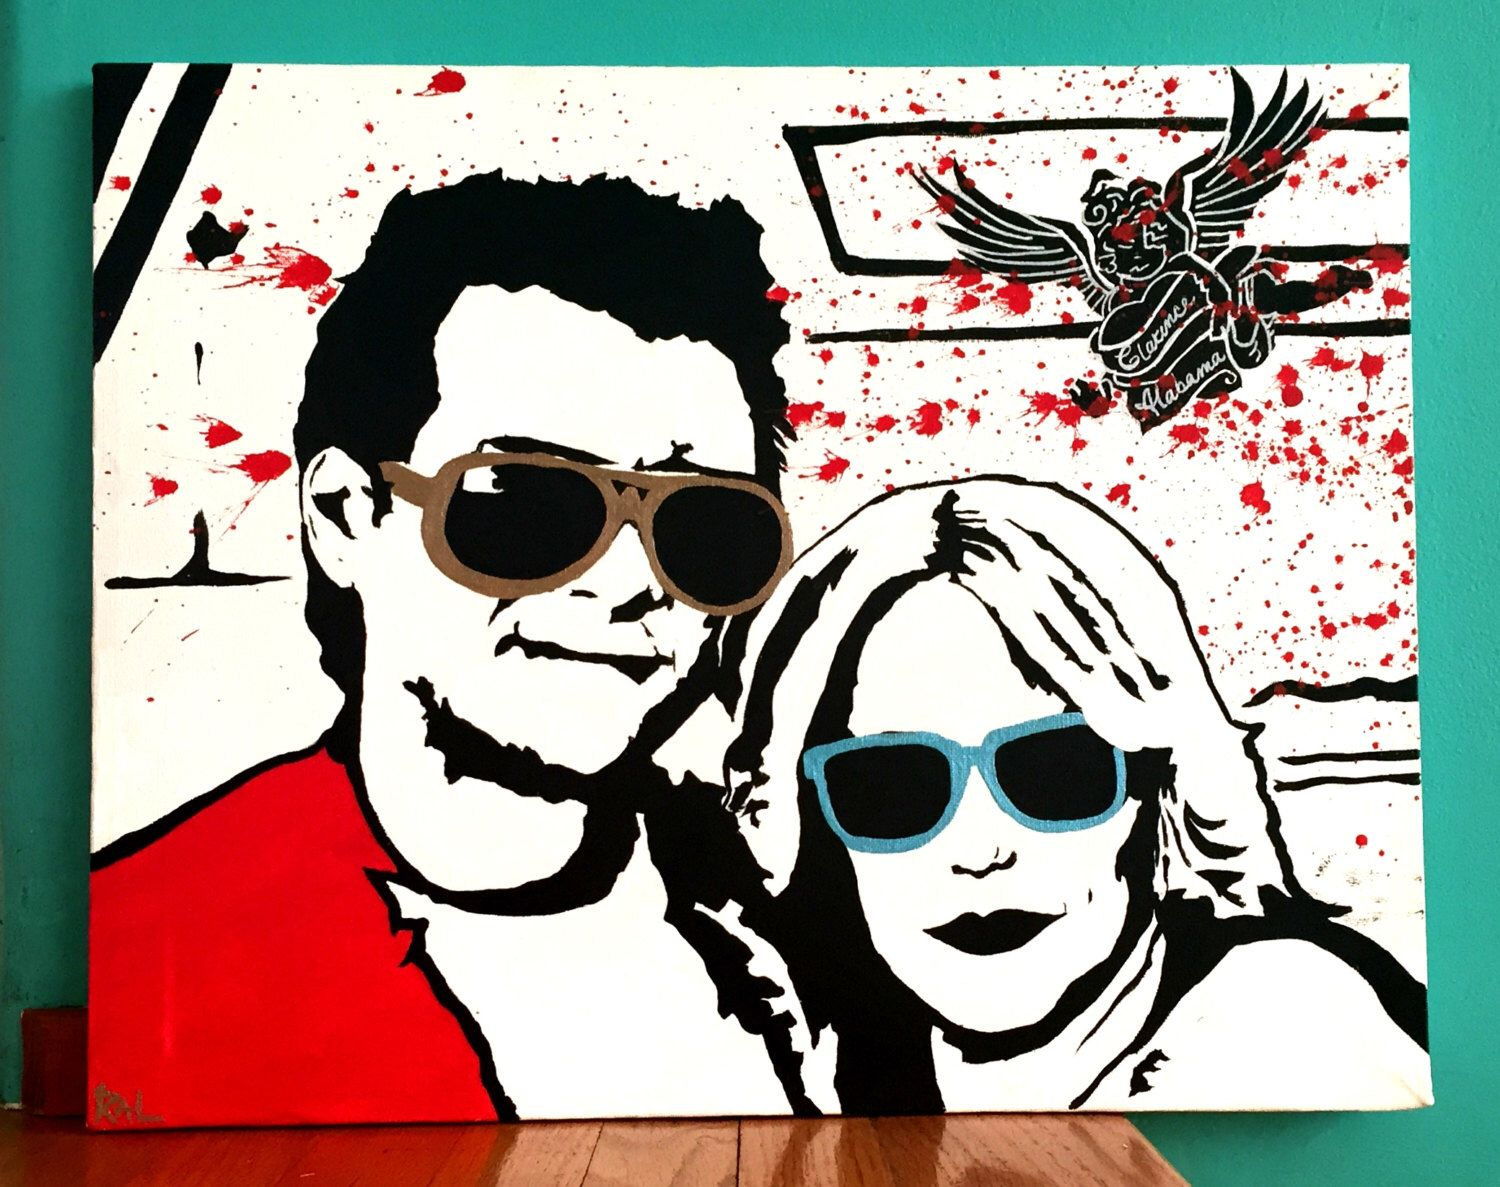 You're So Cool Pop Art Painting by ThatsHighlyOffensive on Etsy https://www.etsy.com/listing/229506944/youre-so-cool-pop-art-painting